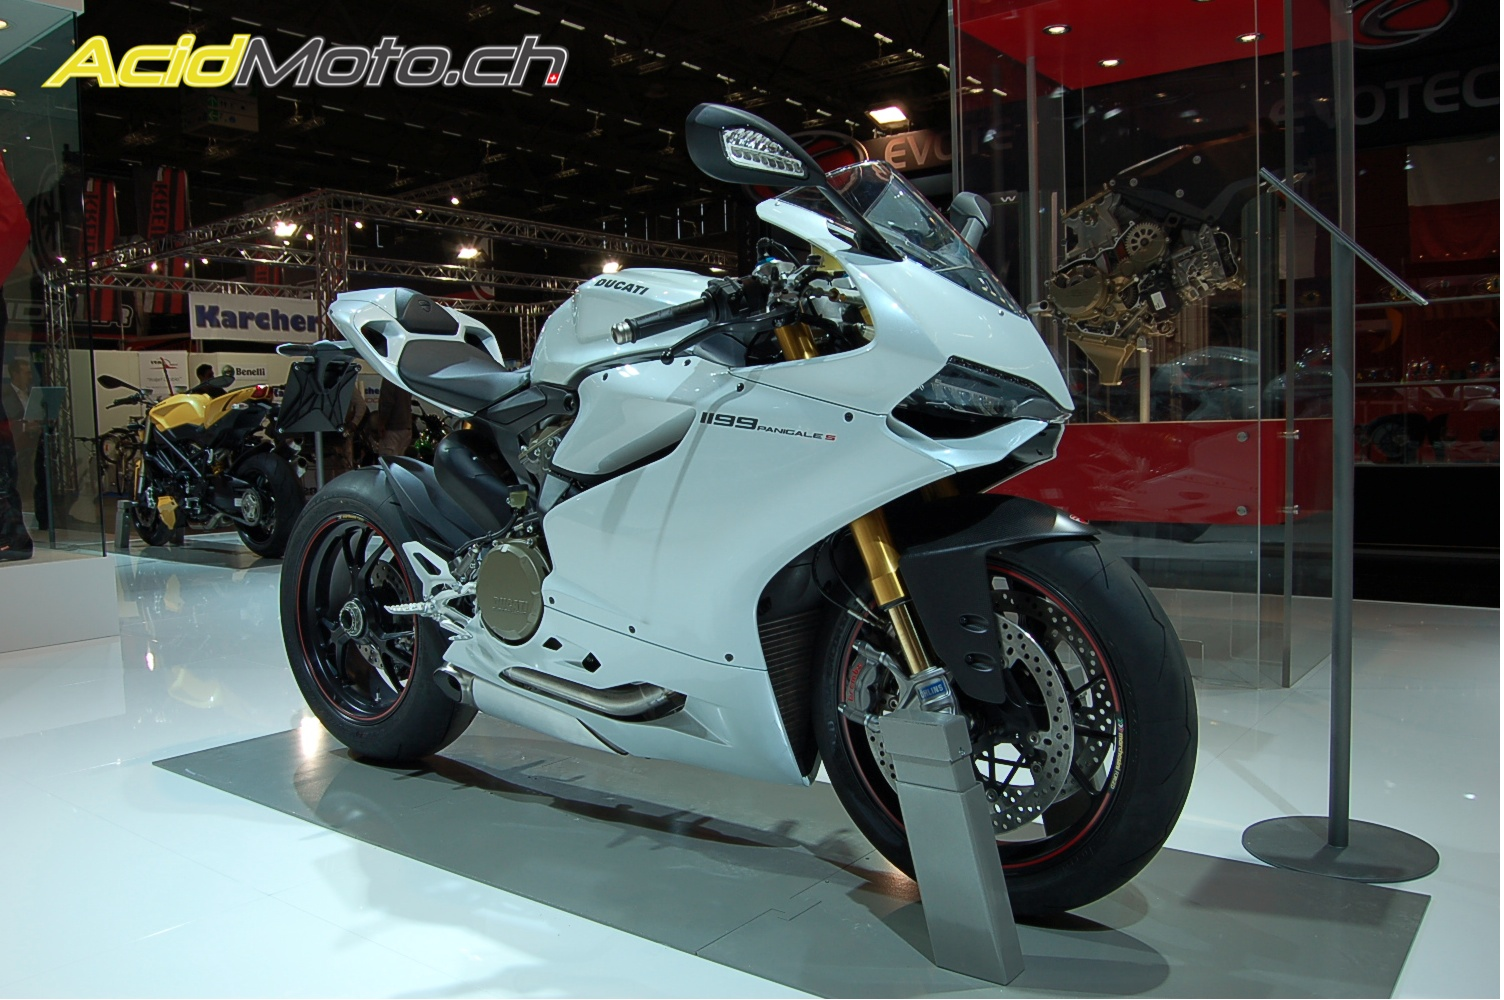 ducati 1199 Panigale ( Topic N.3 ) - Page 4 591700ducatipanigalewhite